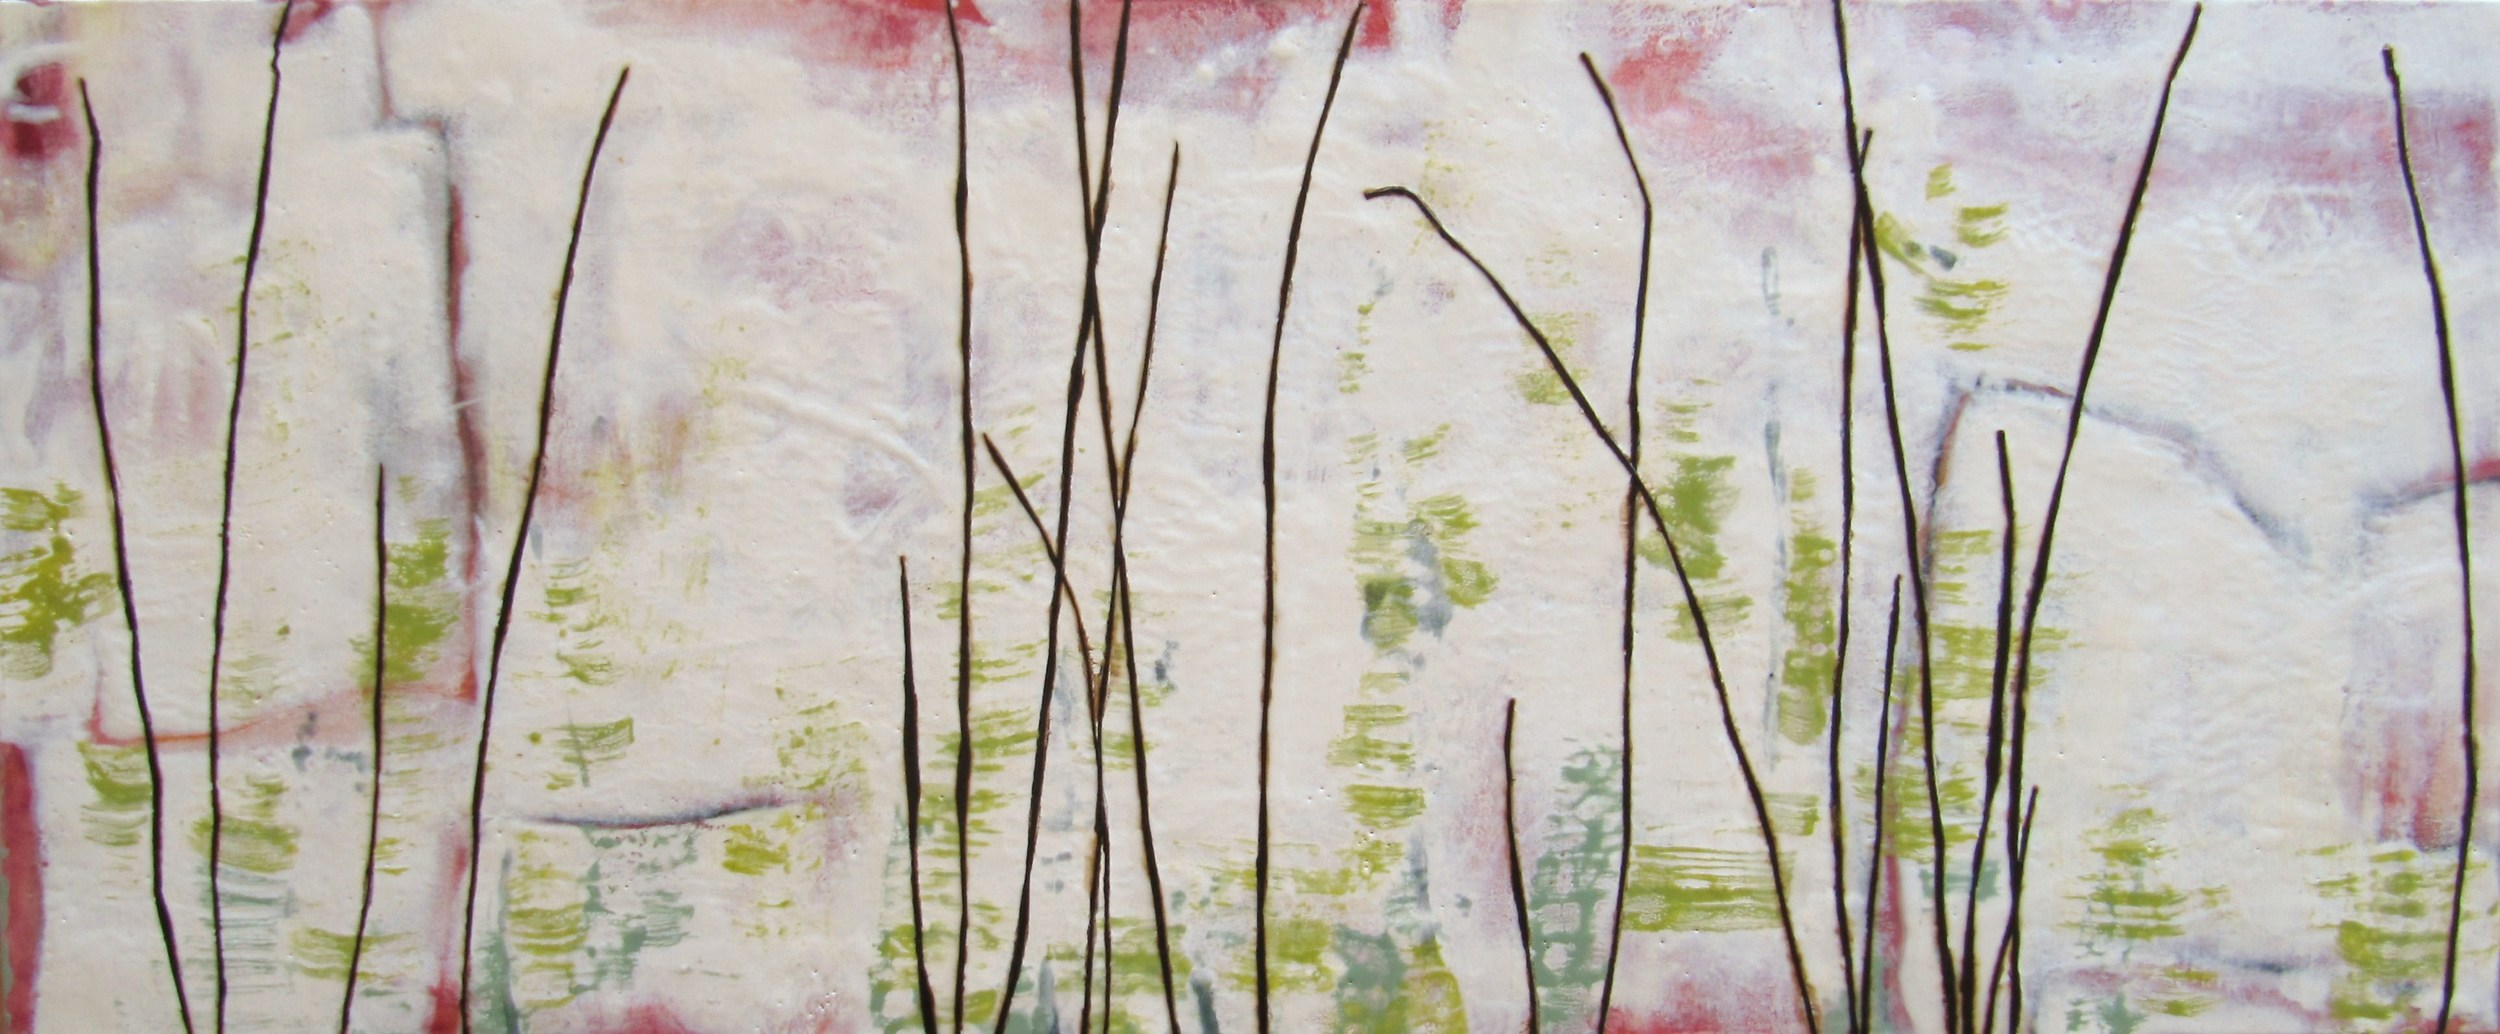 Surface, 2008 / Encaustic on canvas on wood panel, 20 x 48 / Sold